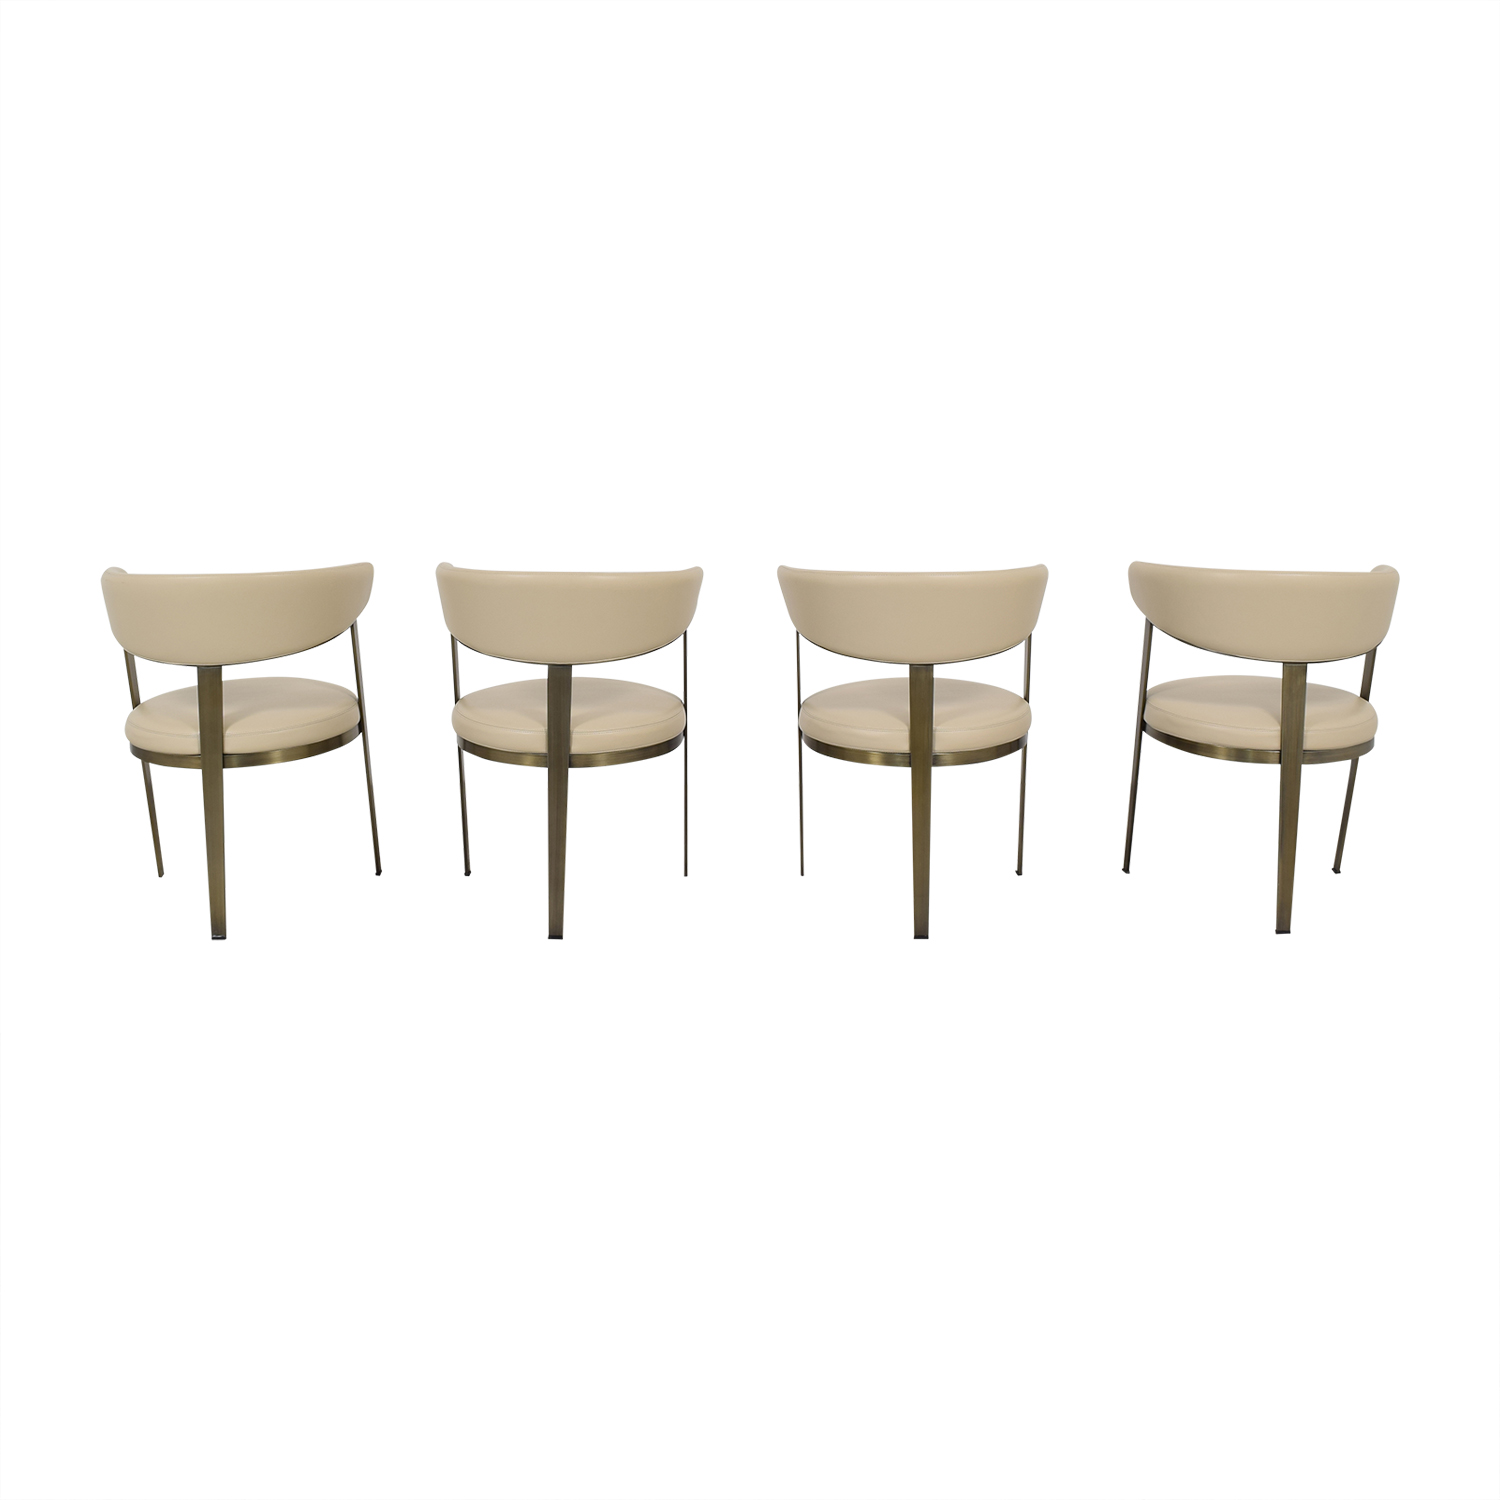 buy Interlude Home Interlude Home Dining Chairs online